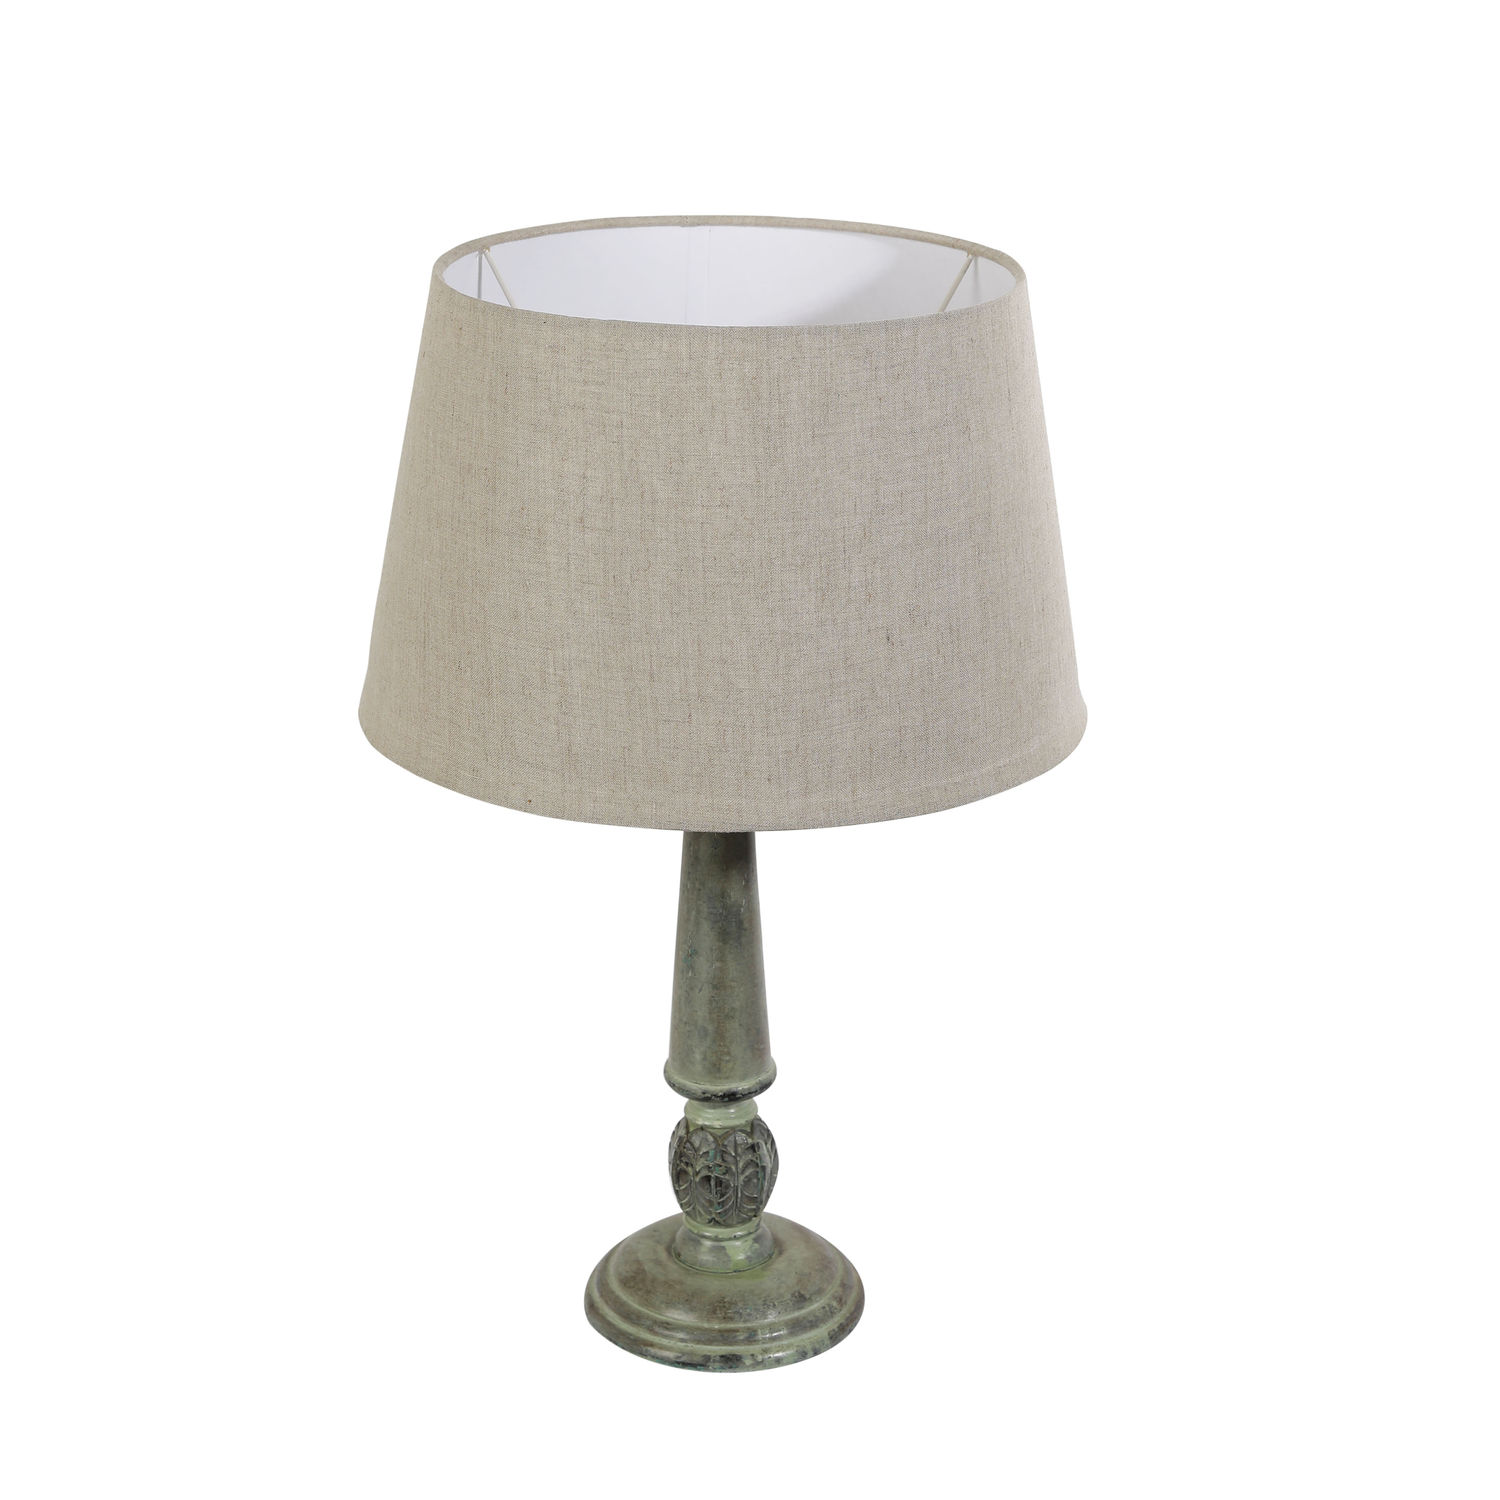 The Decor Mart Off White Shade With Wooden Base Lamp 14